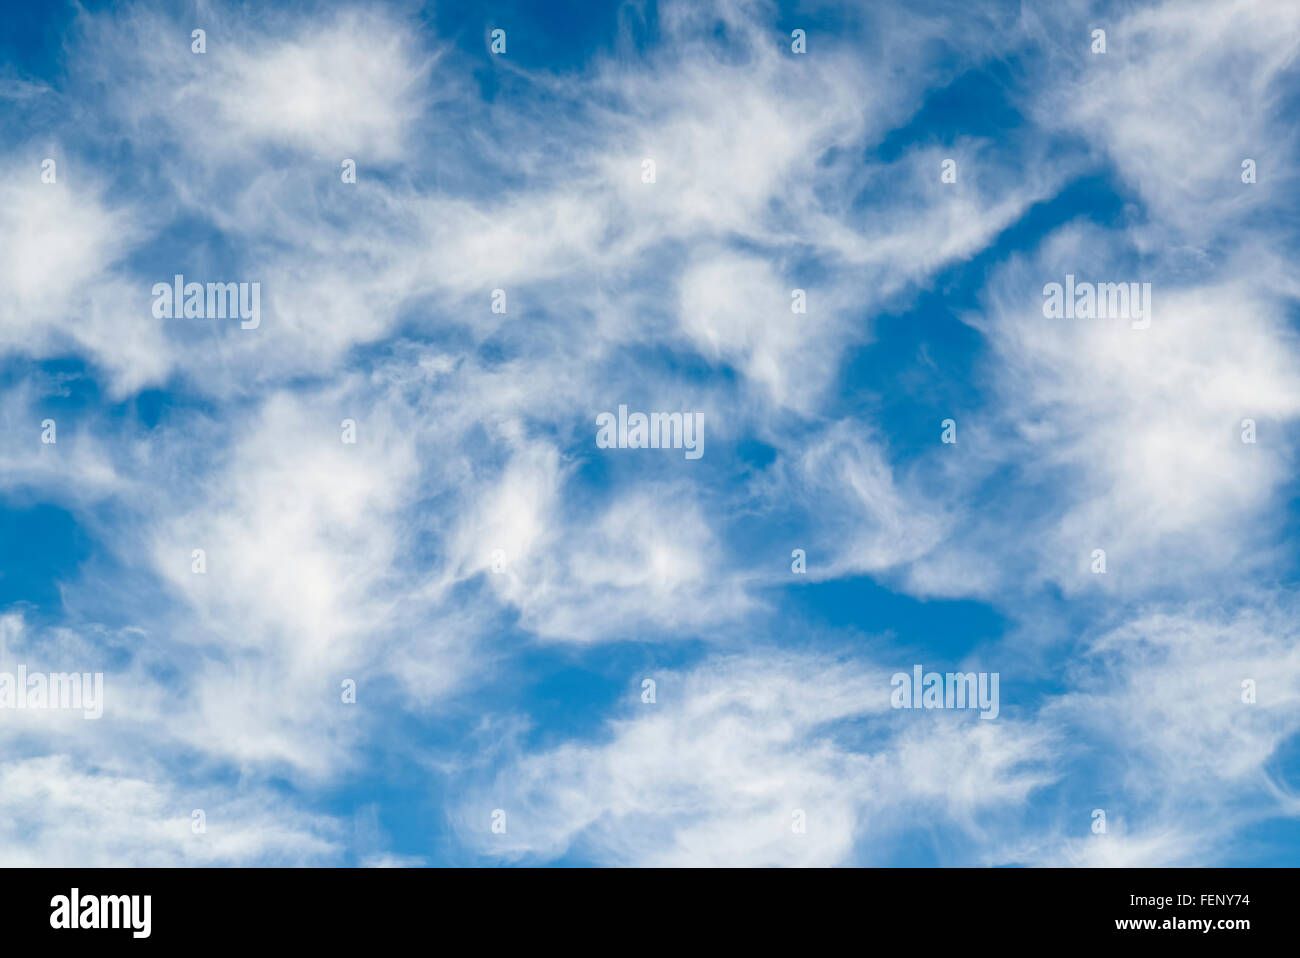 Cirrus cluds. White and wispy with mares Tales against clear blue sky - Stock Image